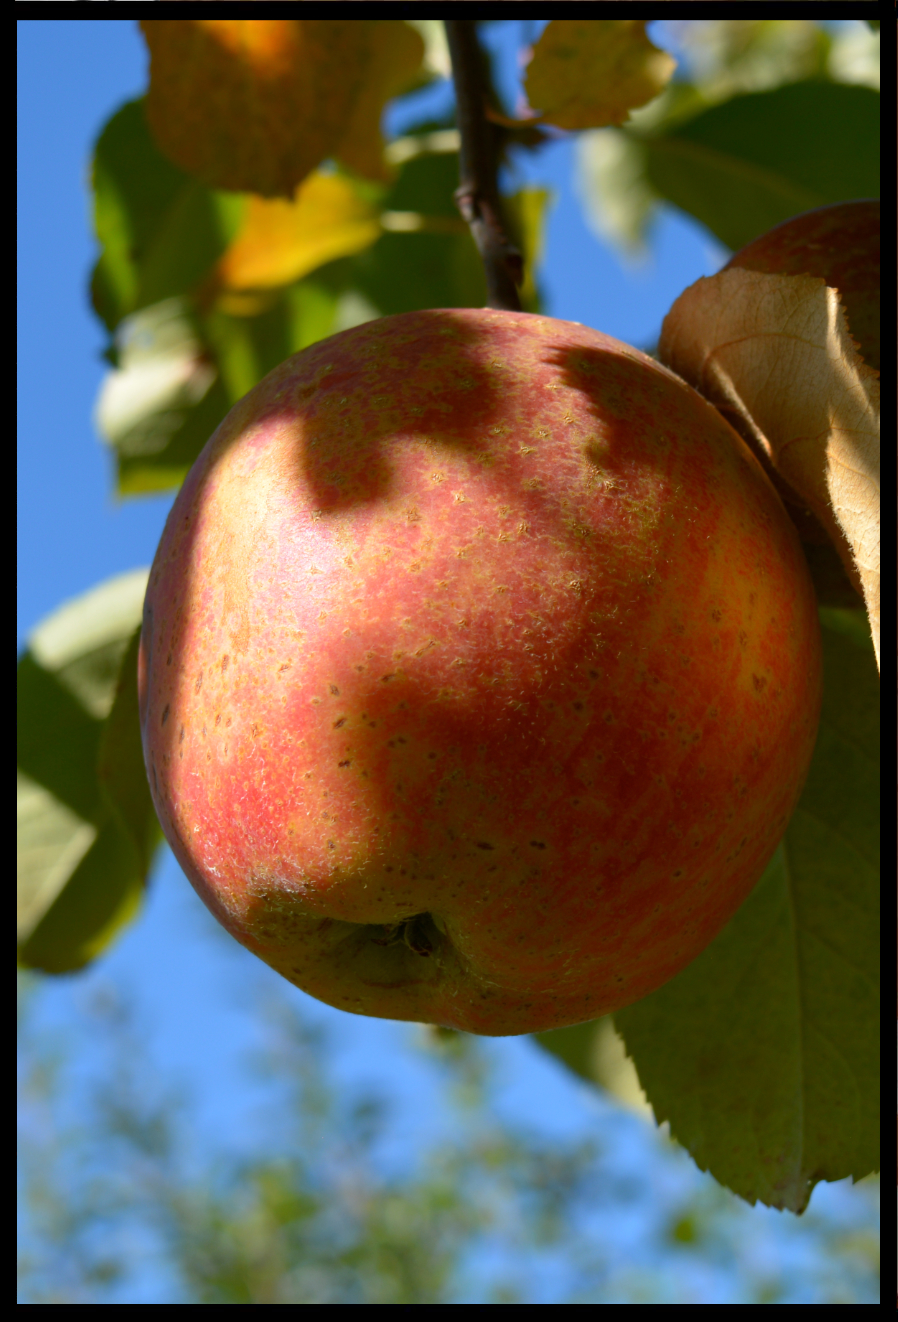 yellow and light red mottled apple with numerous medium sized brown spots